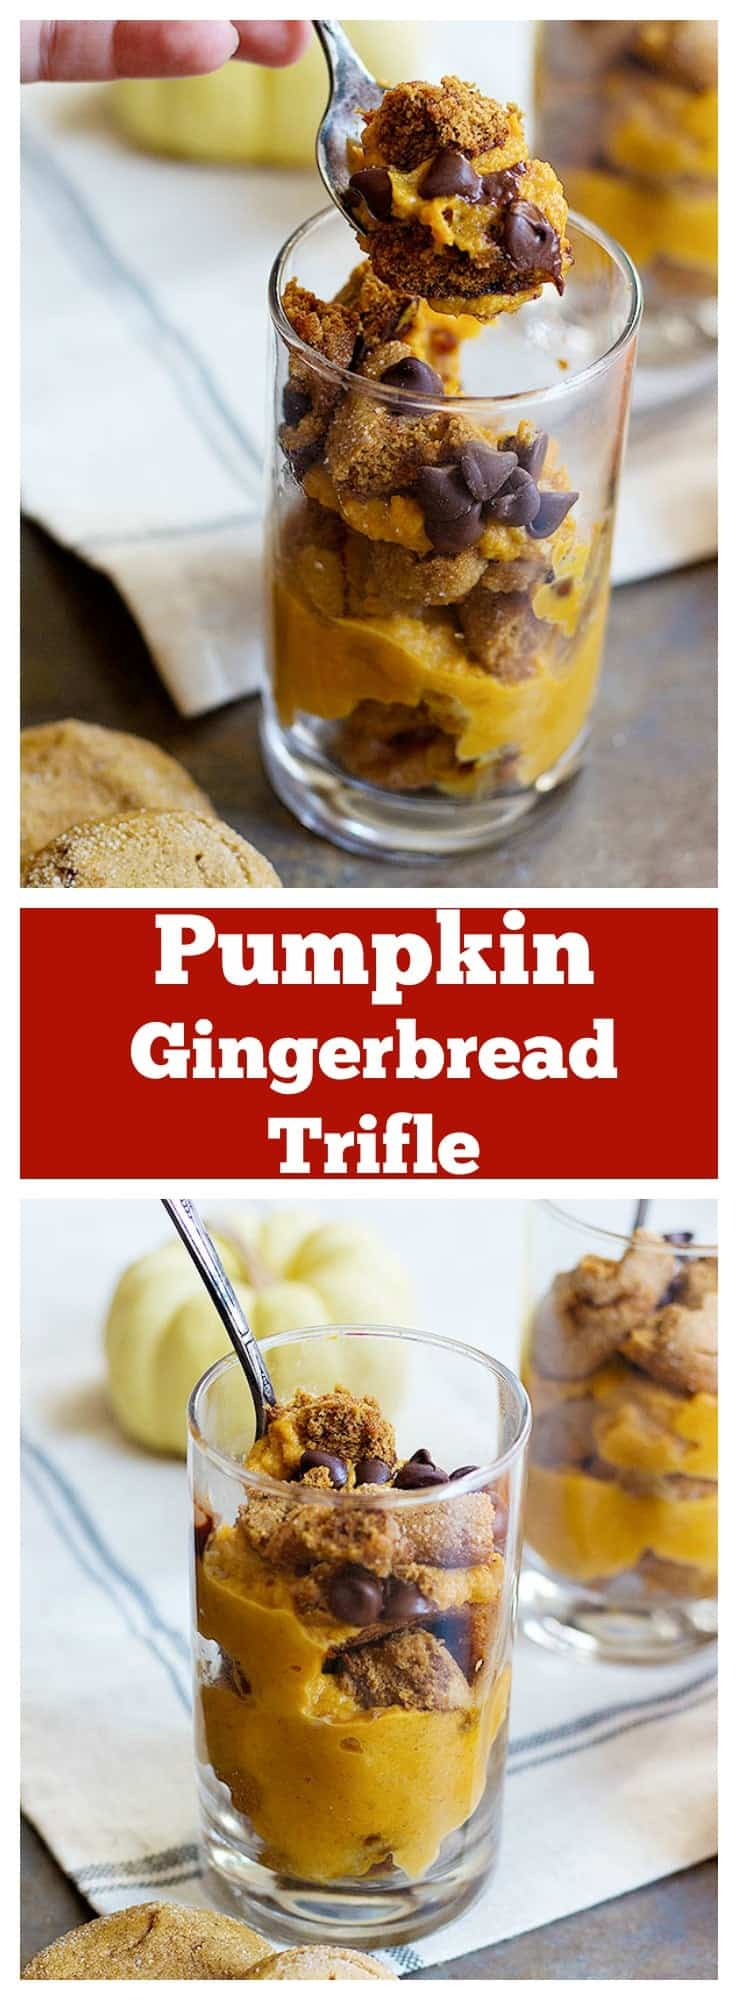 Pumpkin gingerbread trifle is an easy dessert you can make this holiday. It needs only a few ingredients, comes together in minutes and can be made in advance of your holiday gatherings!